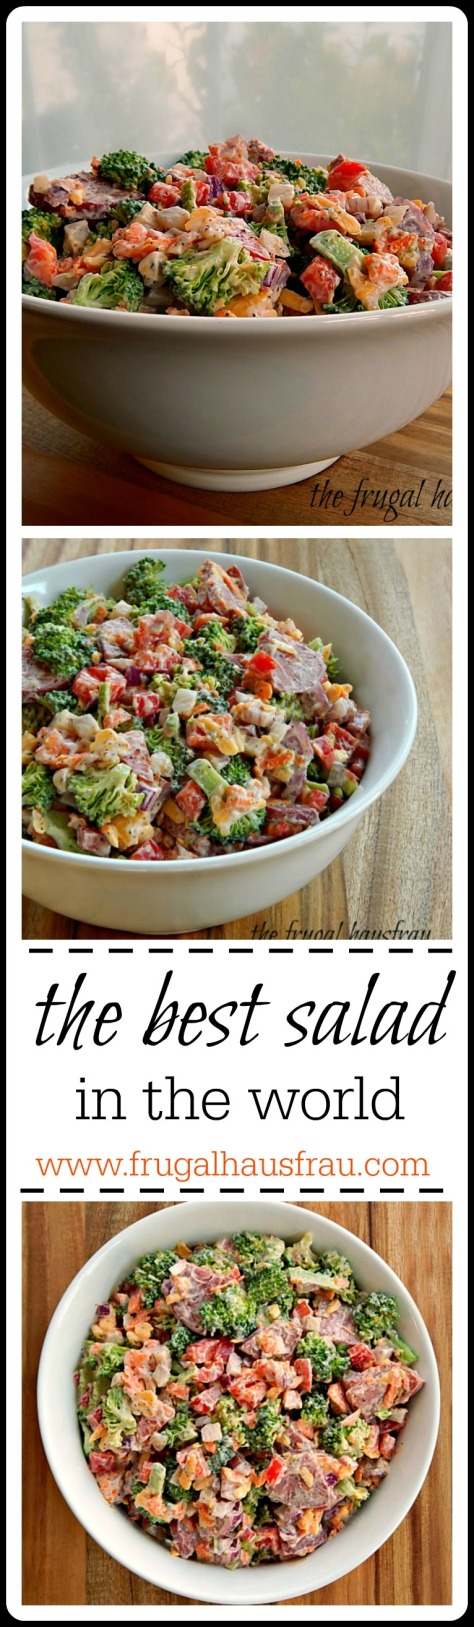 the Best Salad in the World - loaded with good stuff & a surprise: Salami instead of Bacon. Fantastic dressing makes this a great salad to riff with your favorite things.